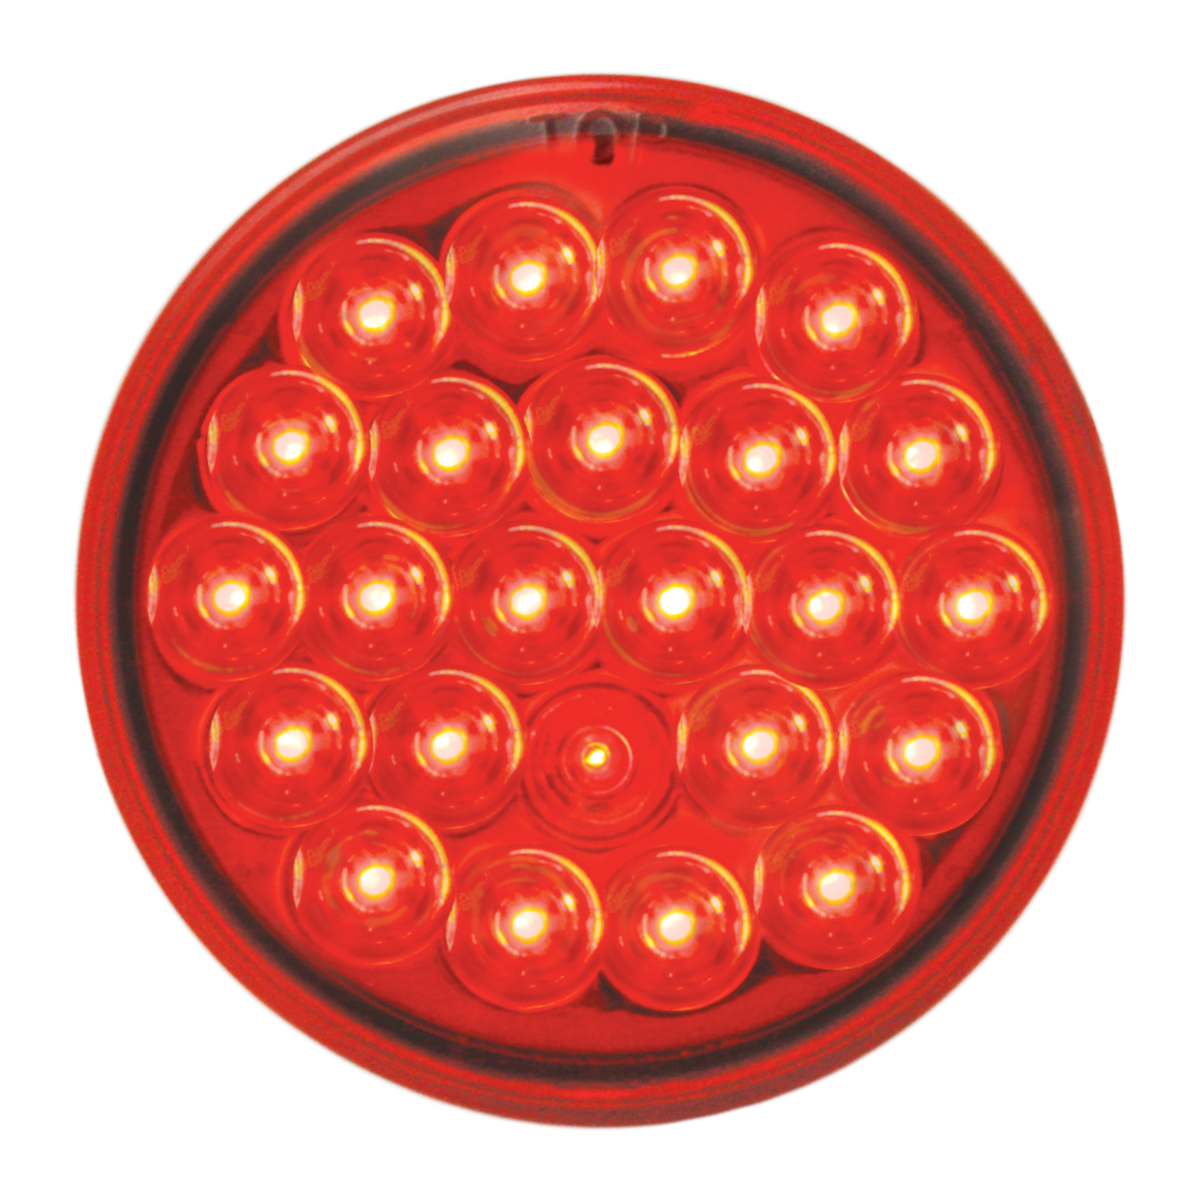 #78274 Pearl LED Flat - Red/Red